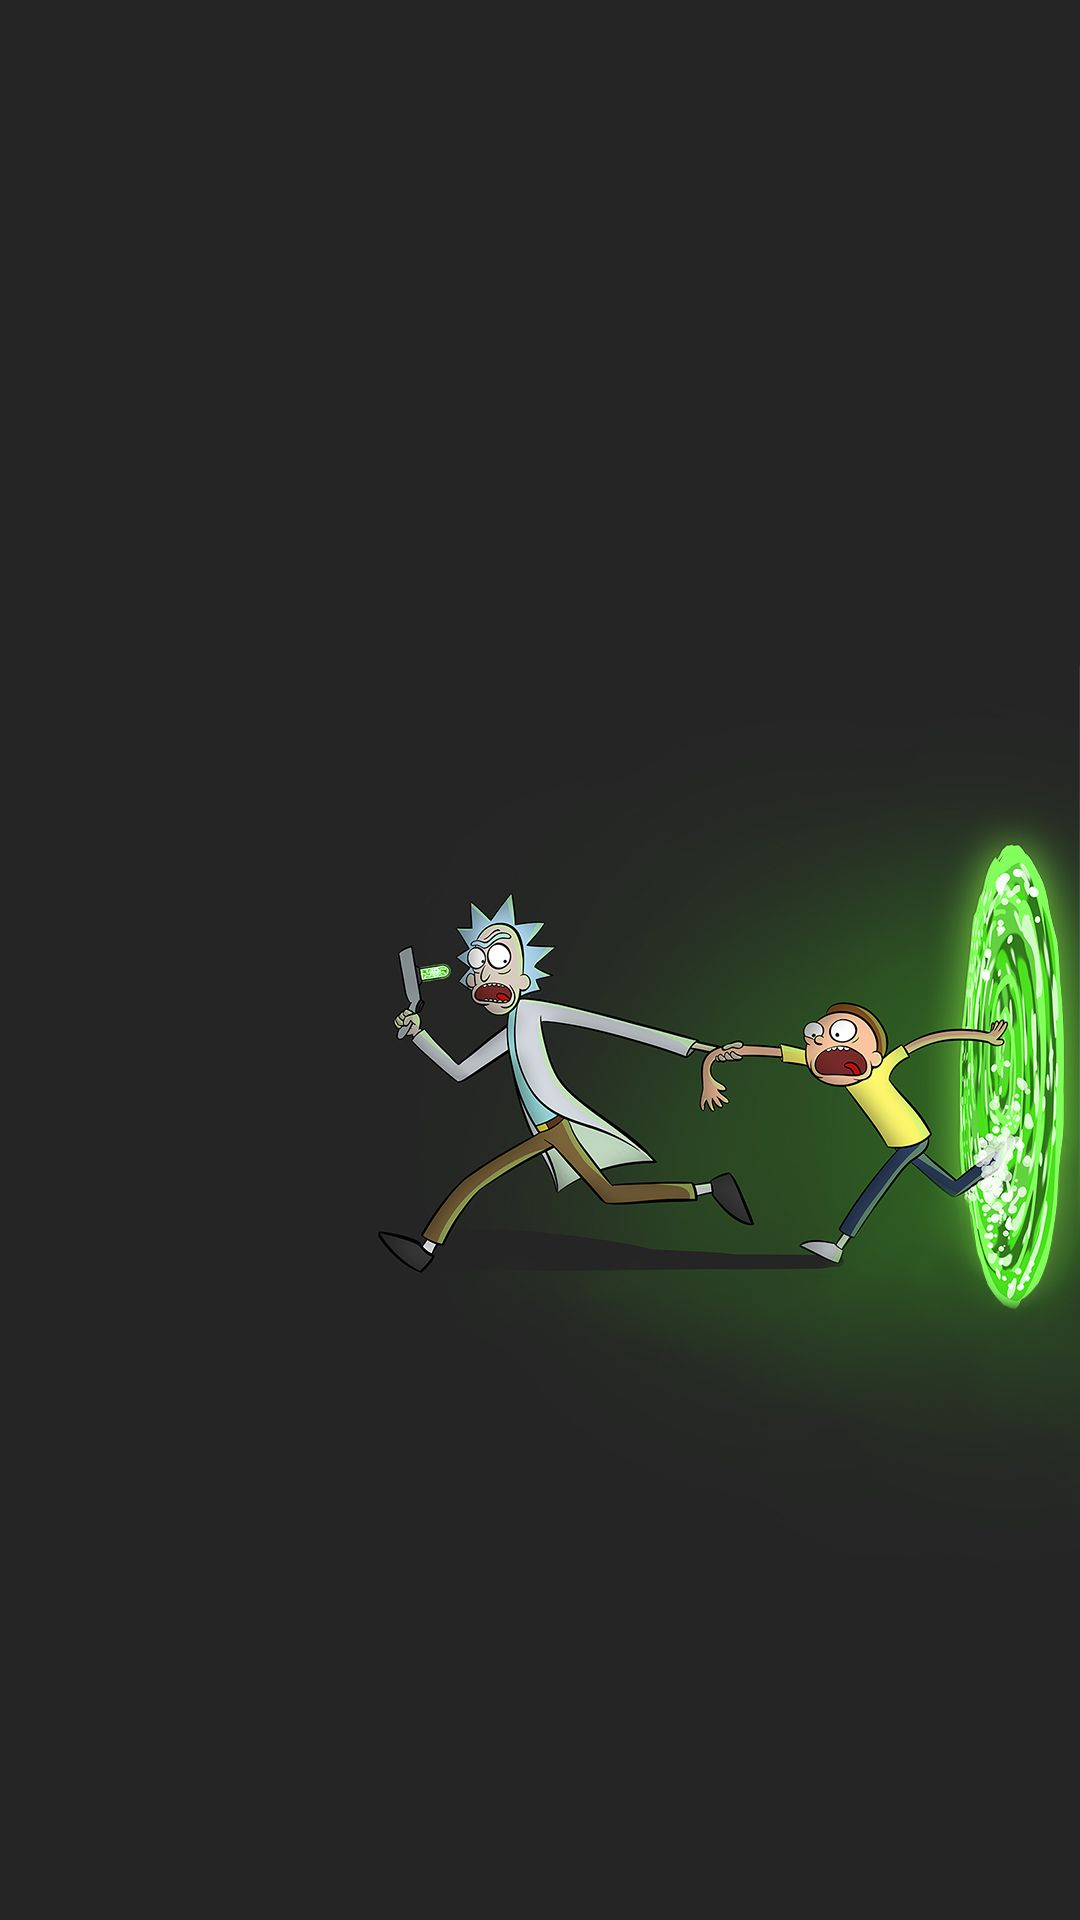 Rick And Morty Iphone Wallpaper Best Lock Screen Ever 23509